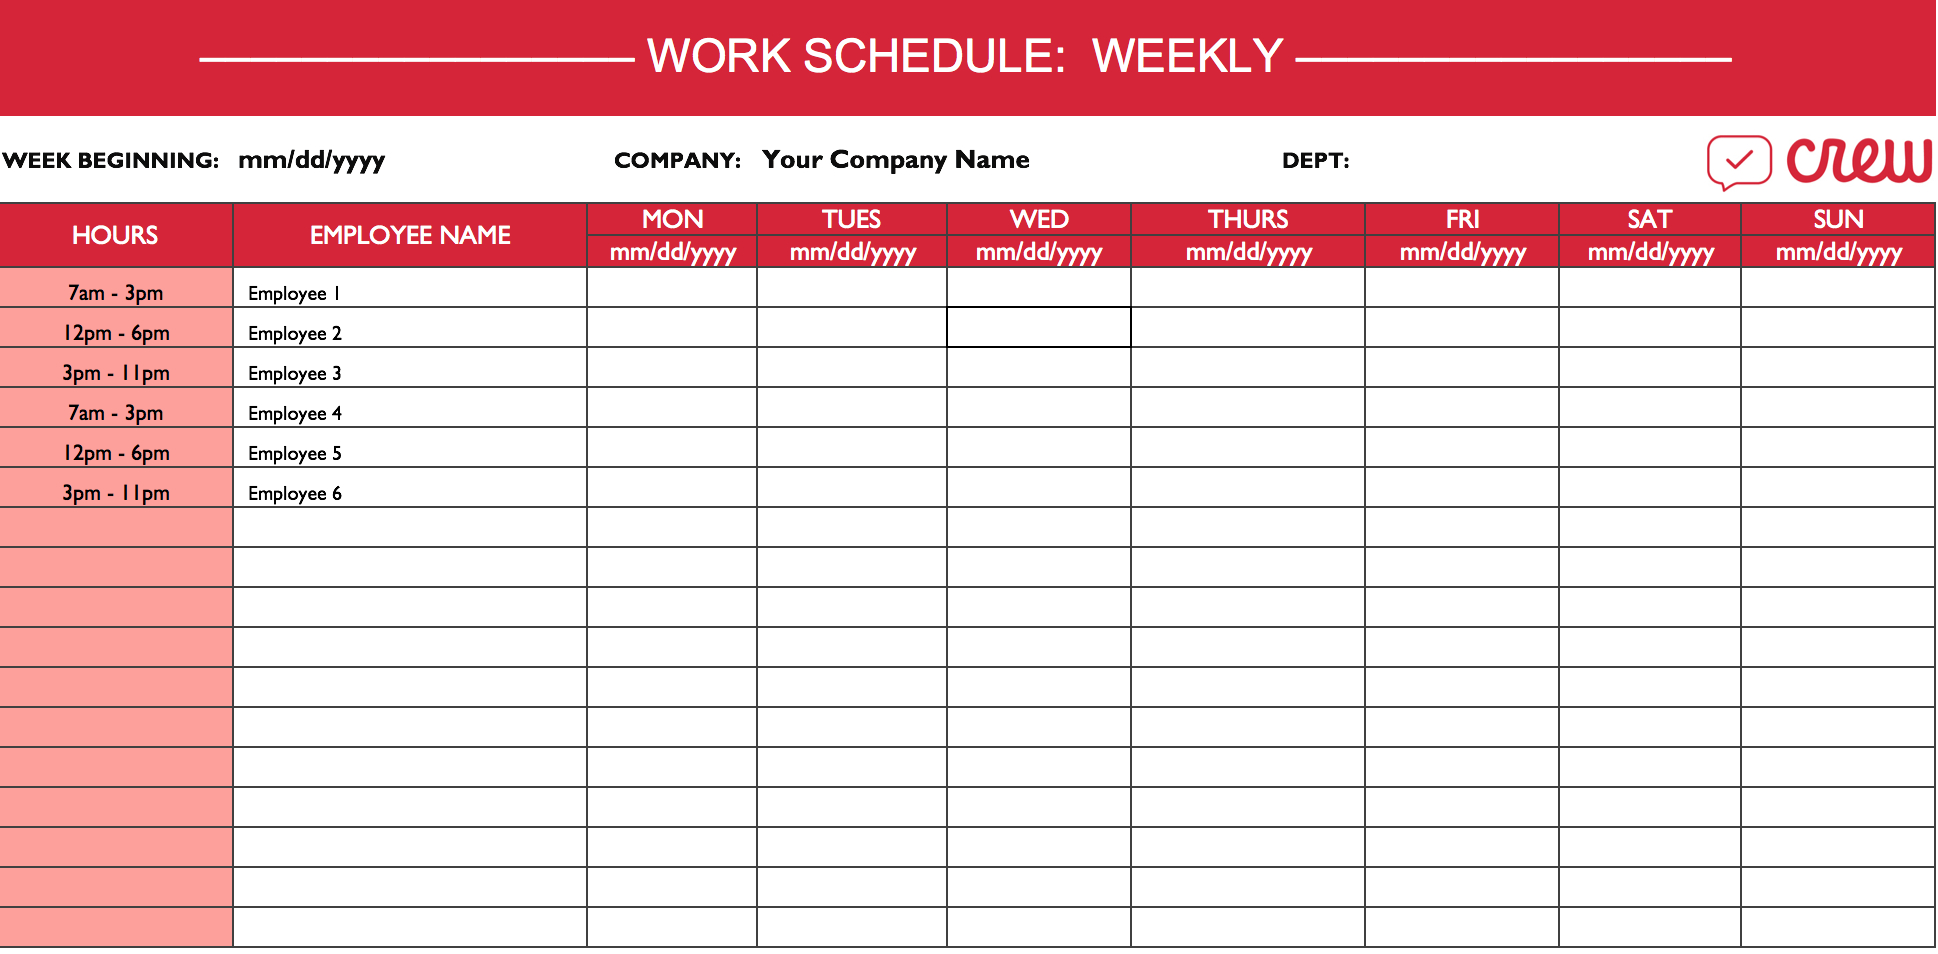 Sample Staff Schedule Spreadsheet Intended For Weekly Work